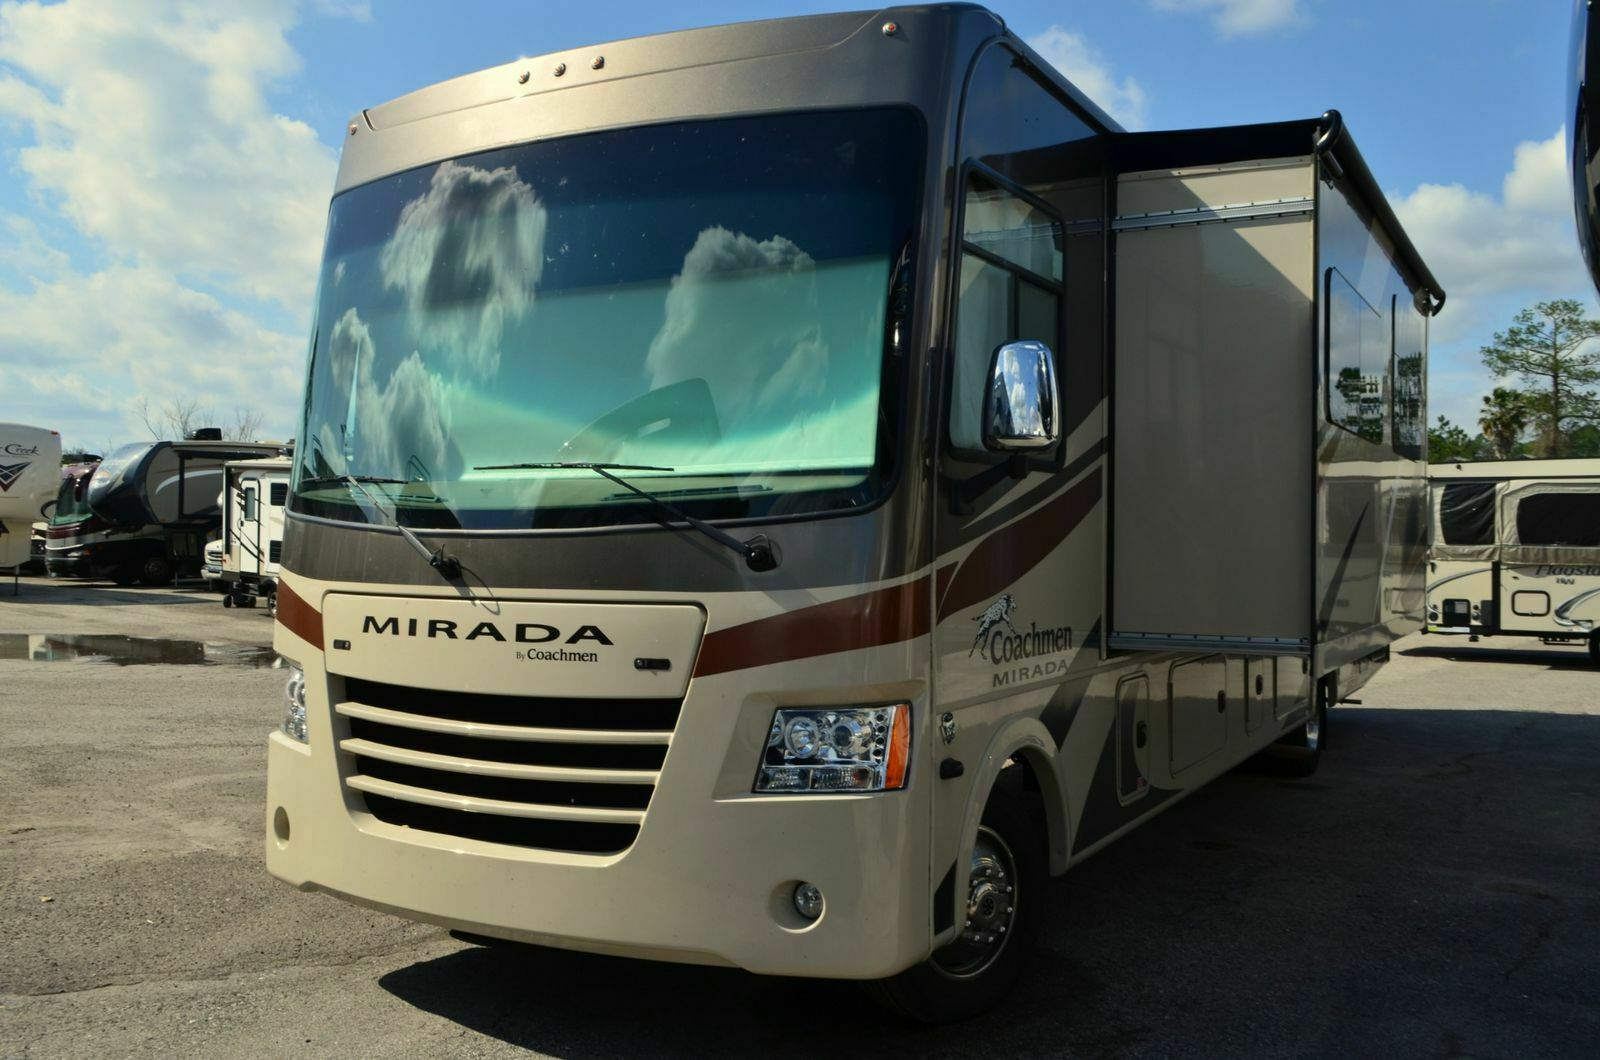 excellent shape 2018 Coachmen Mirada camper